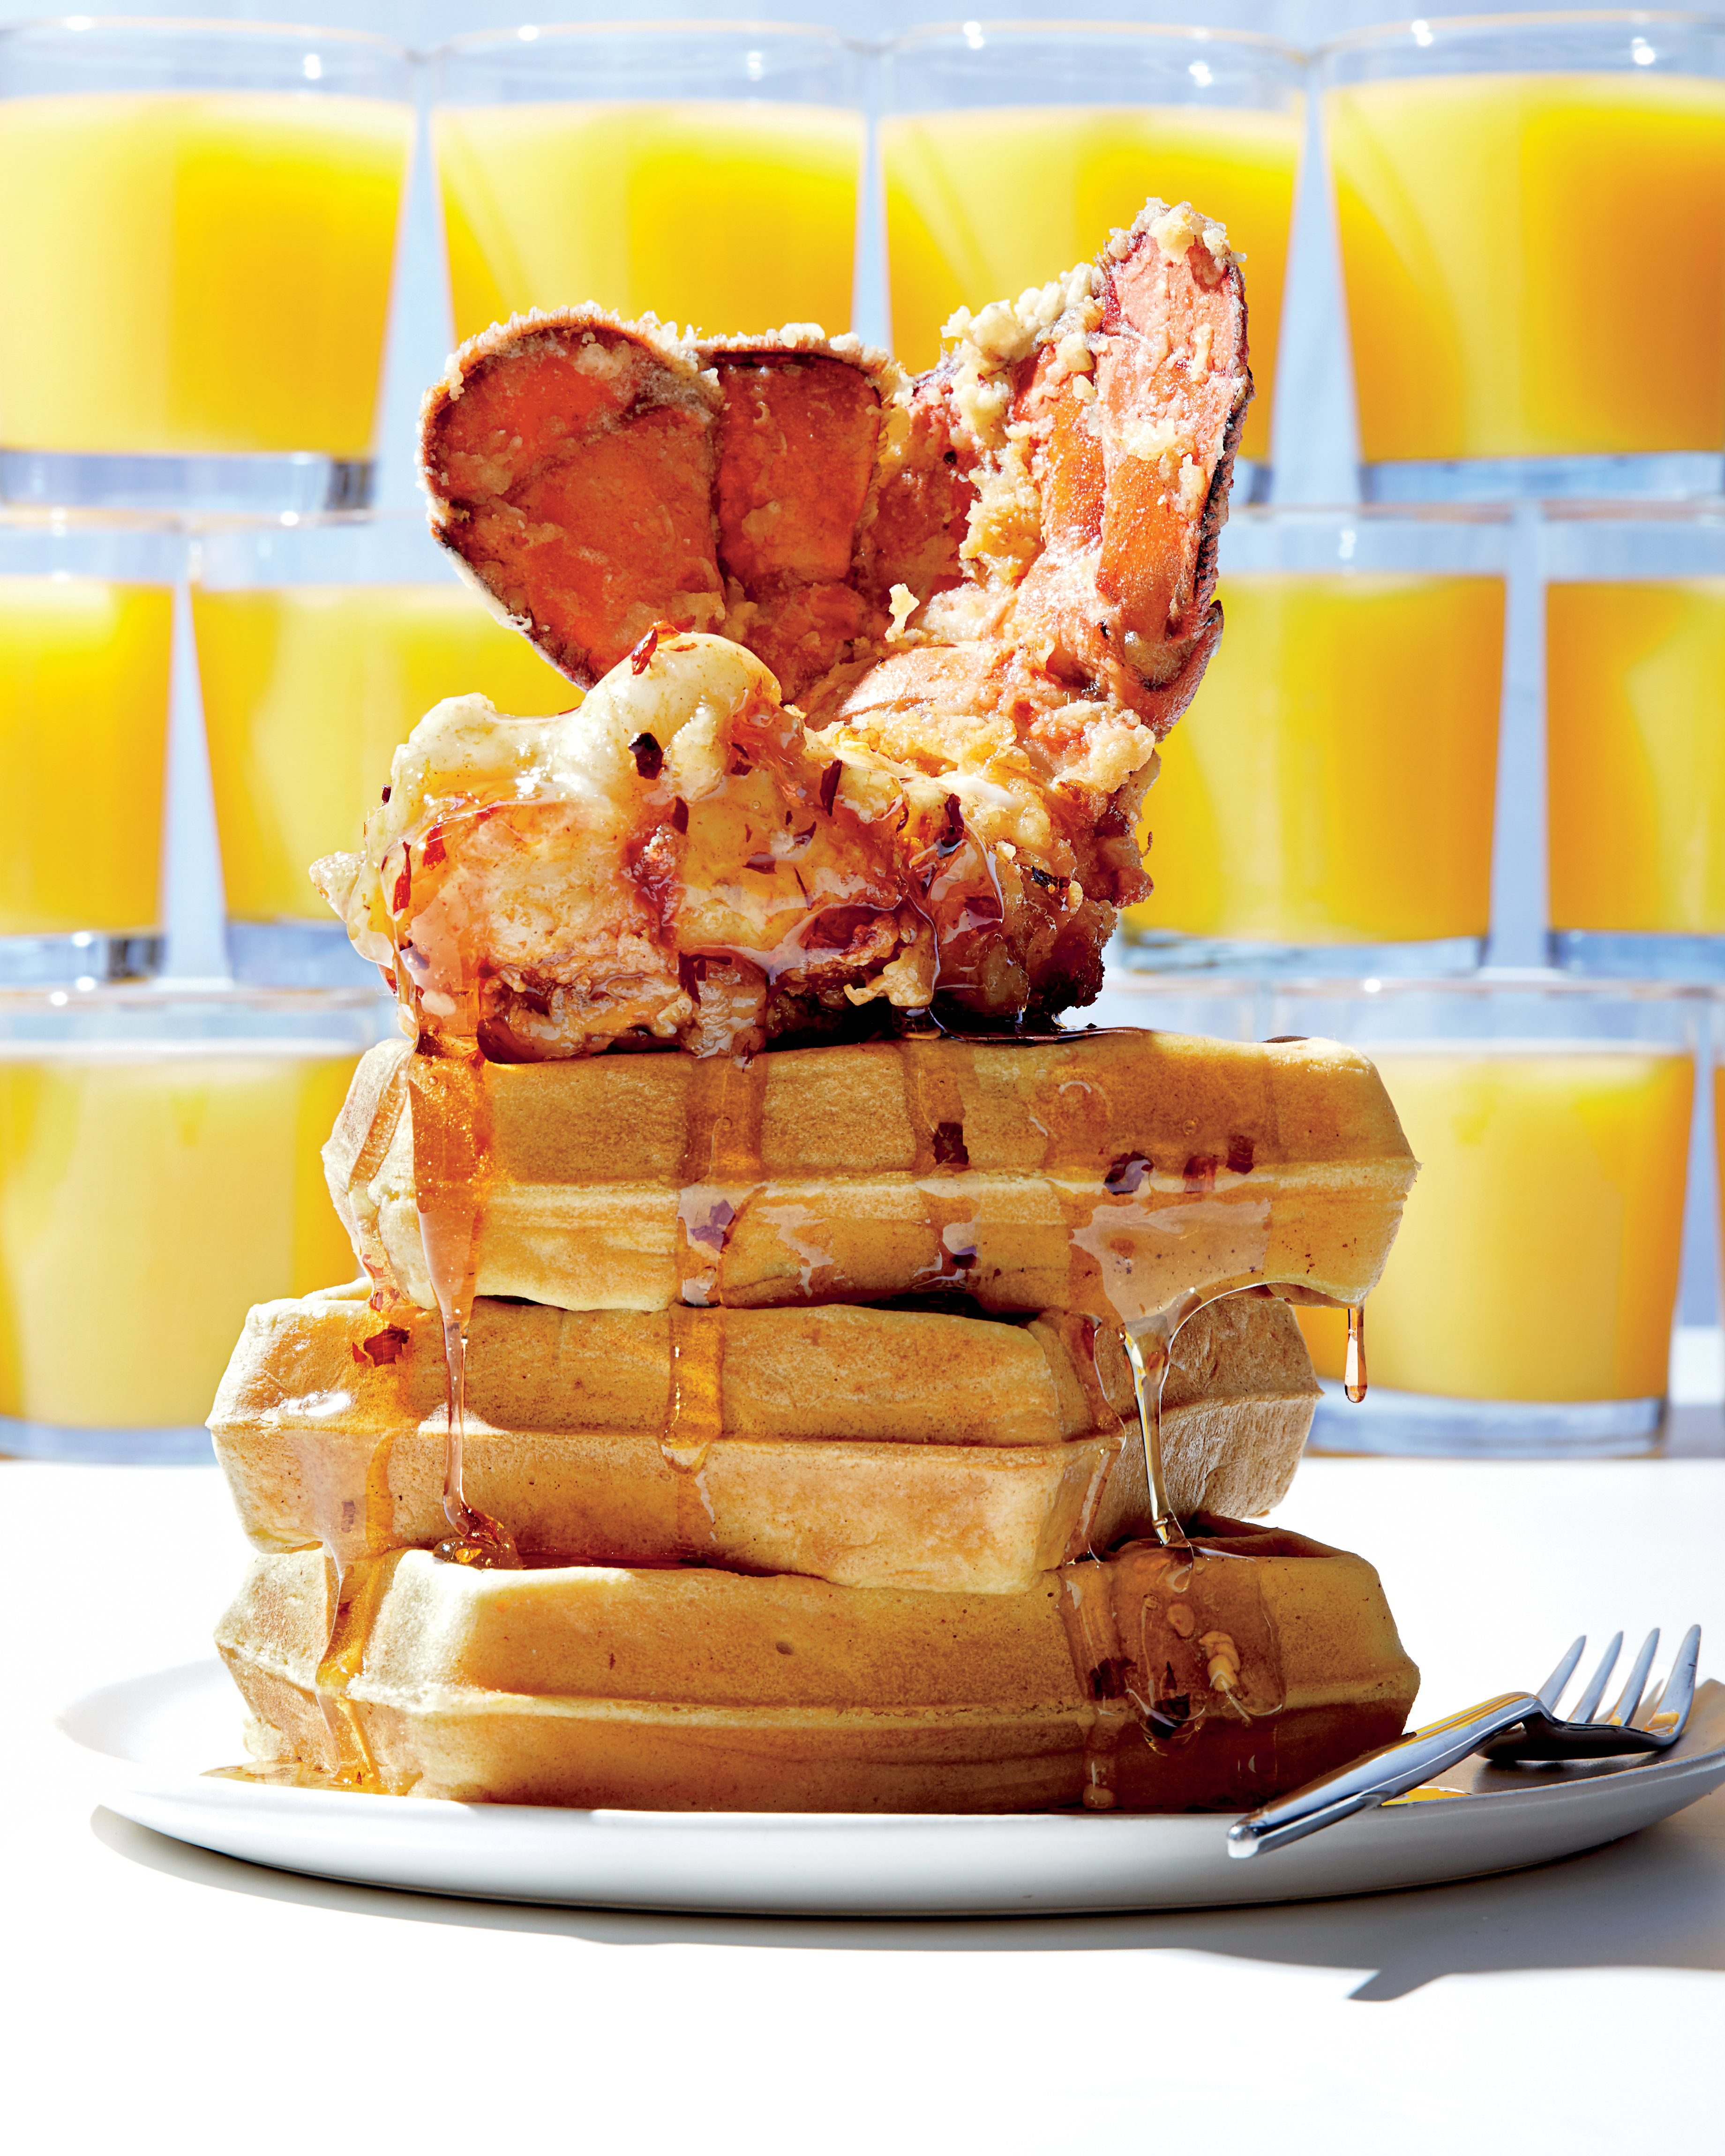 cl-Fried Lobster Tails with Sweet Corn Waffles and Spicy Maple Syrup